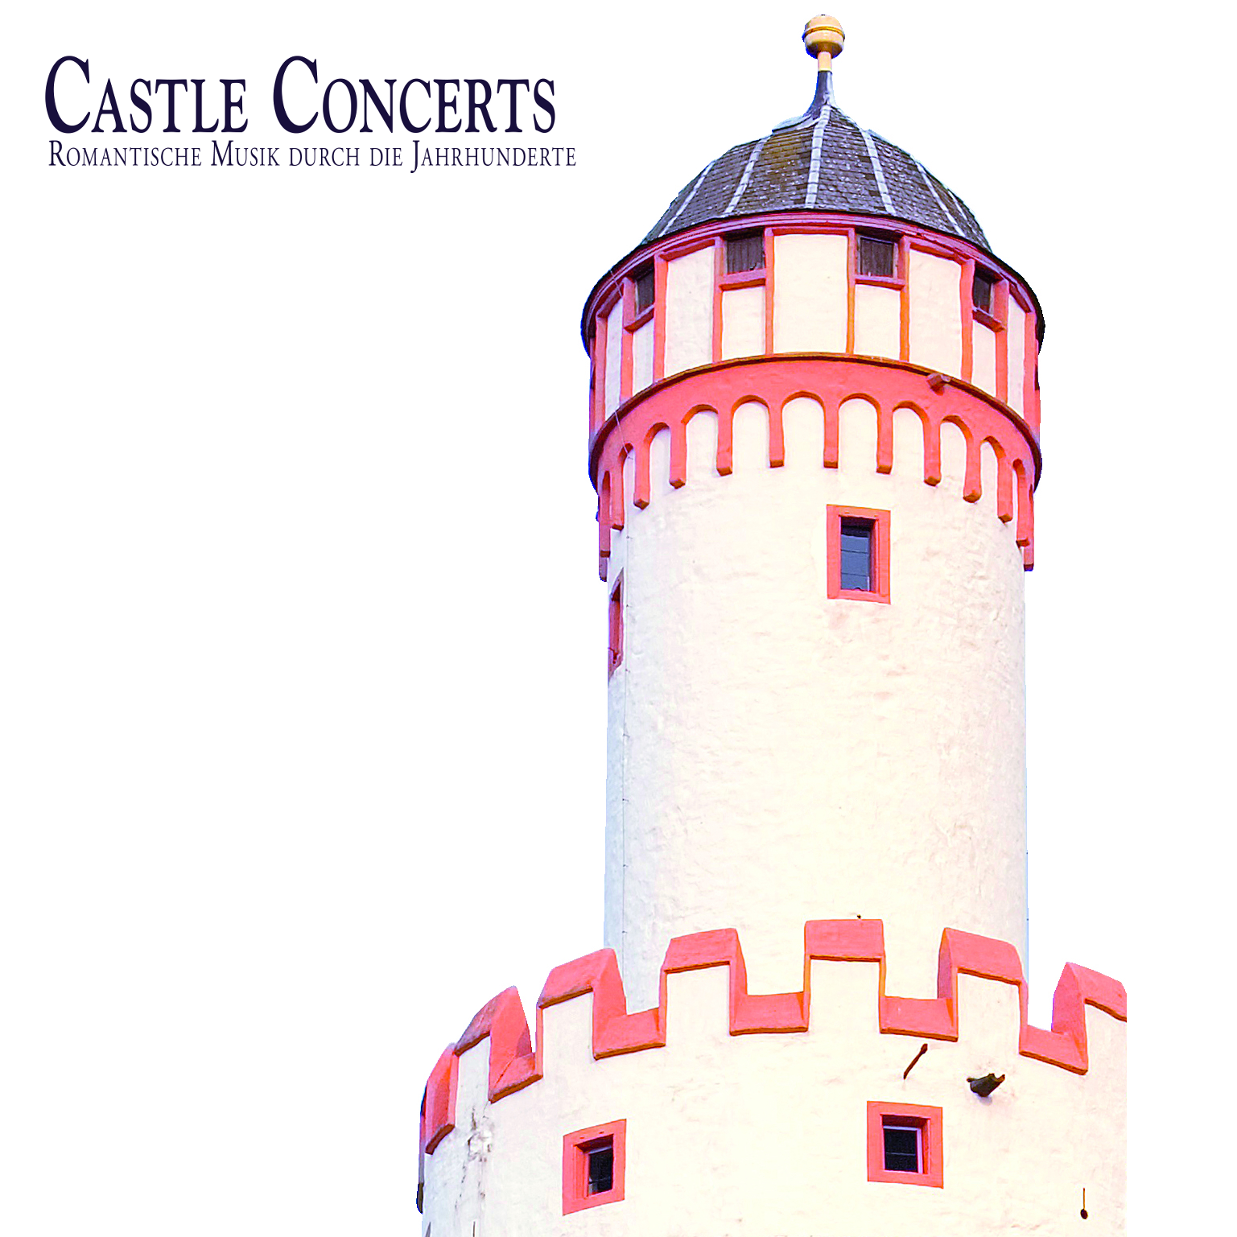 CD-Edition Castle Concerts